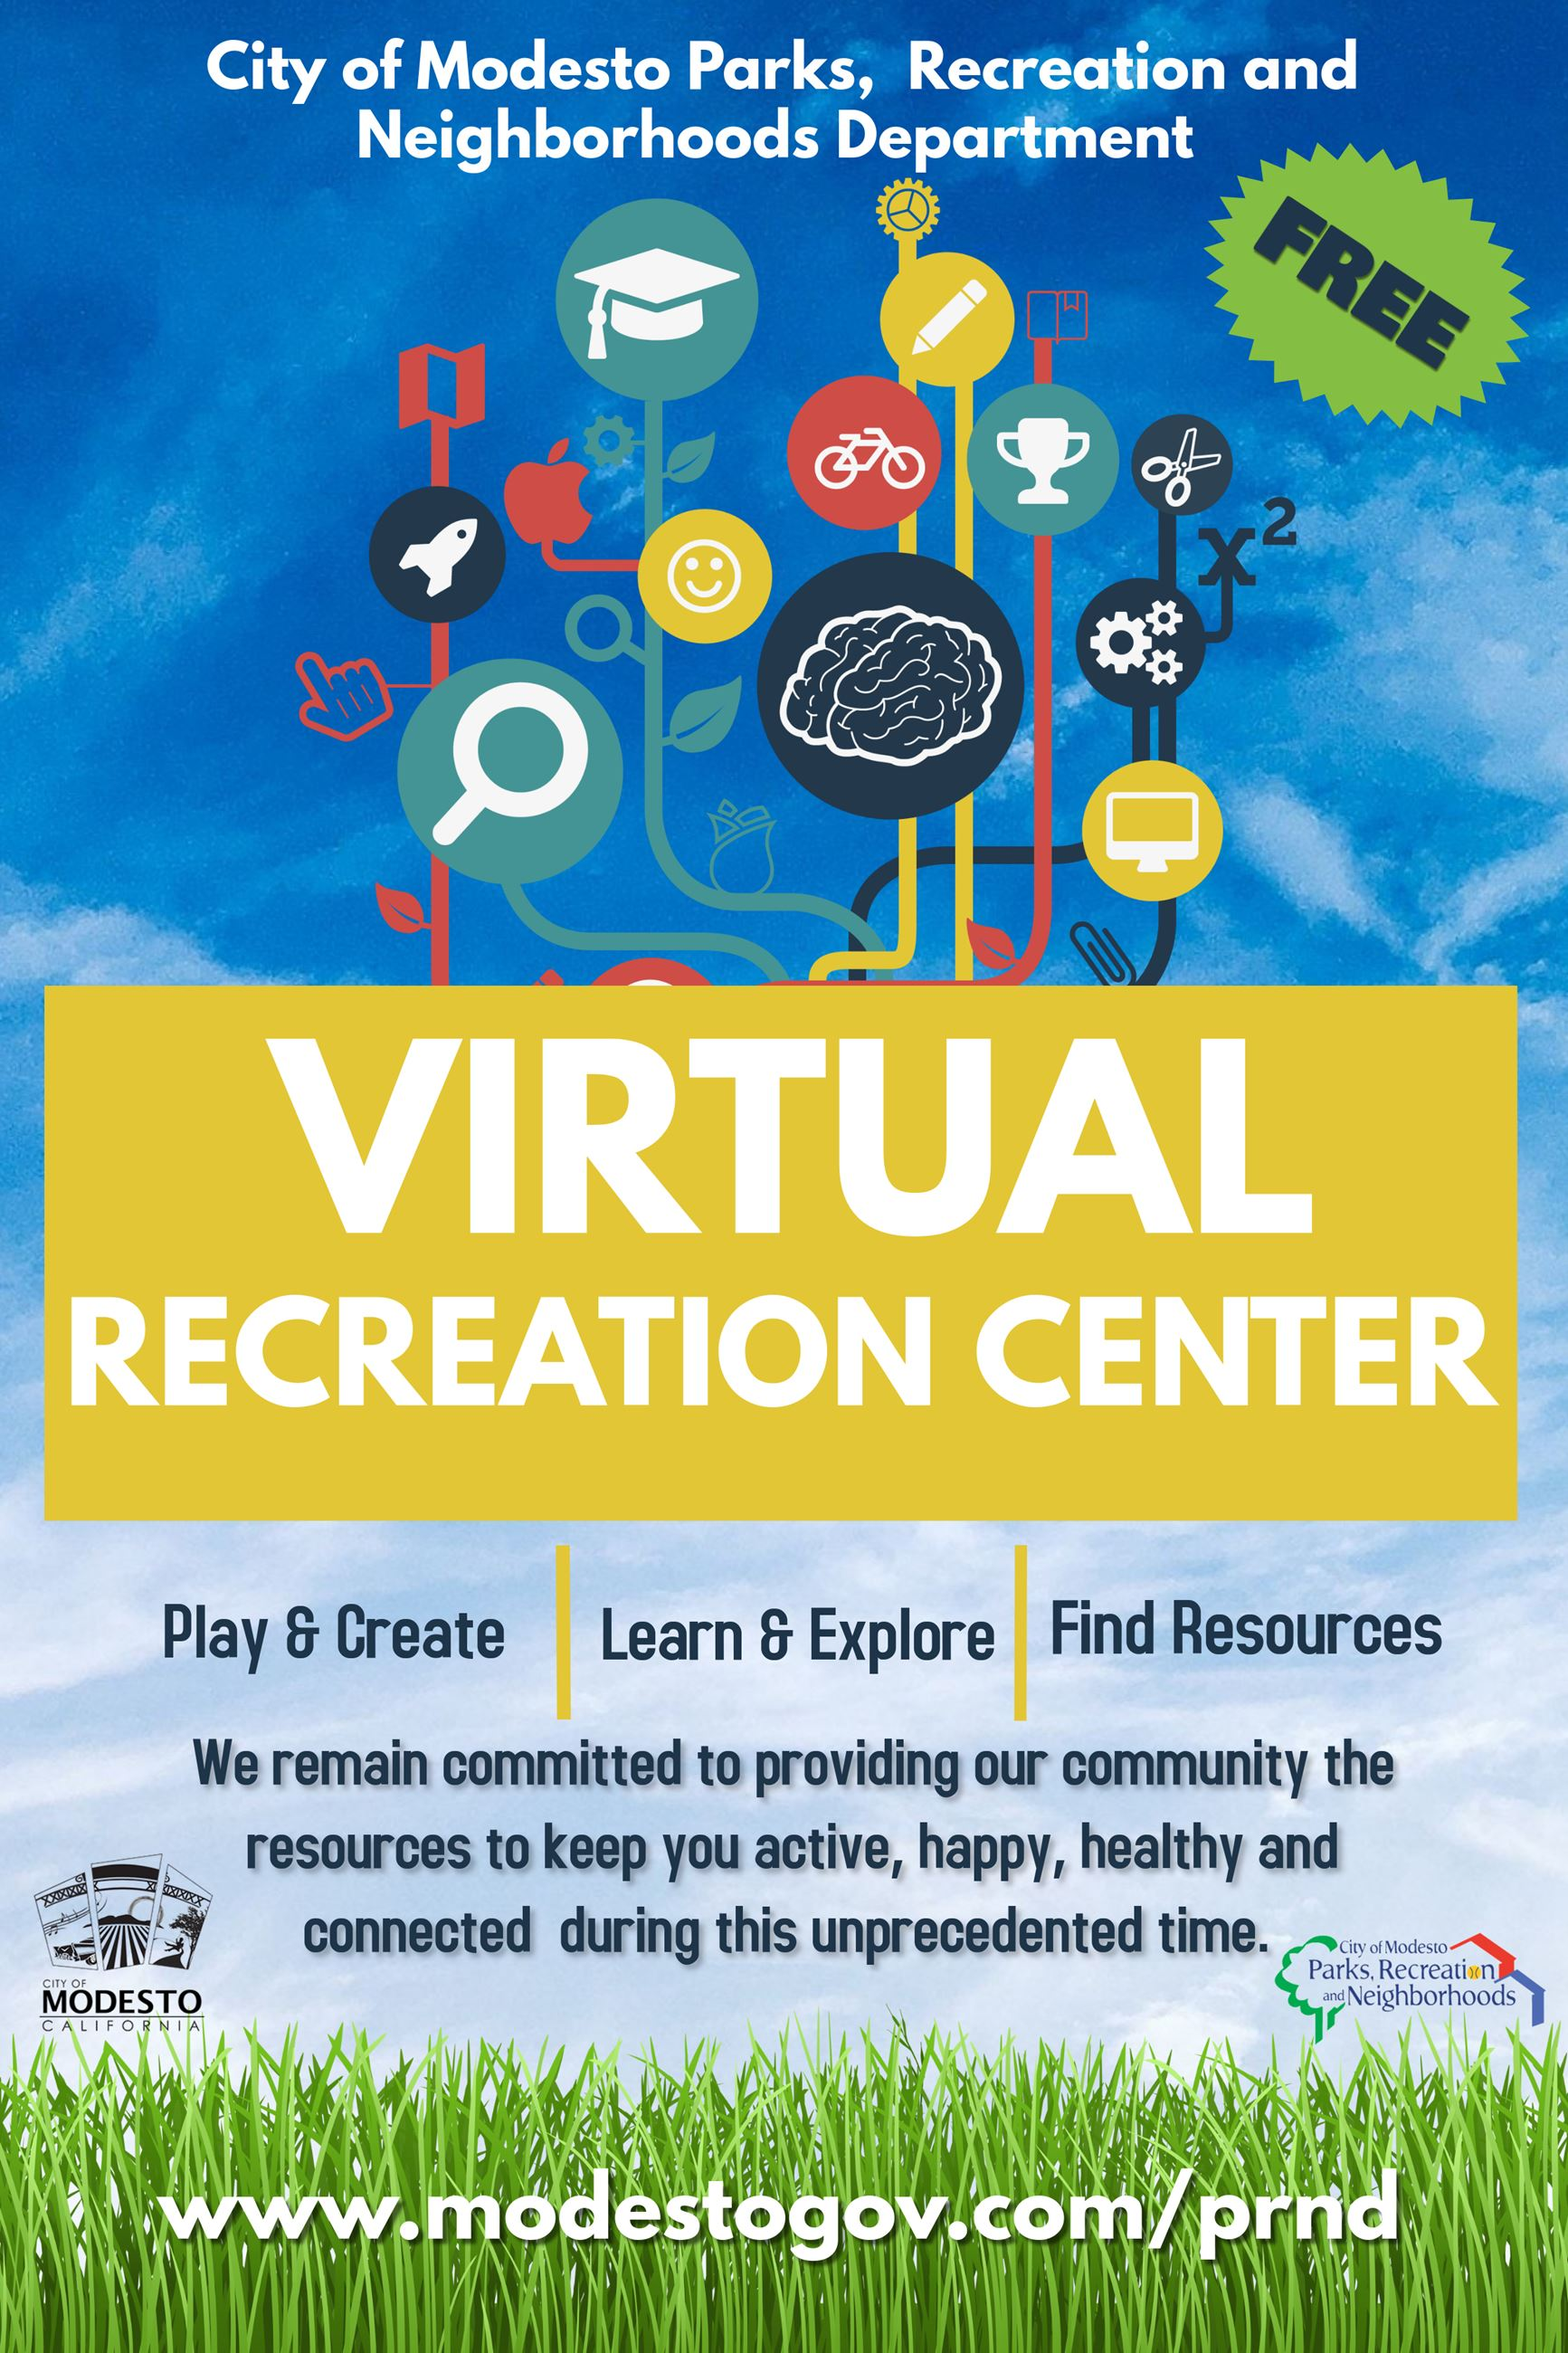 City of Modesto Parks, Recreation and Neighborhoods Department Virtual Recreation Center Flier. Play